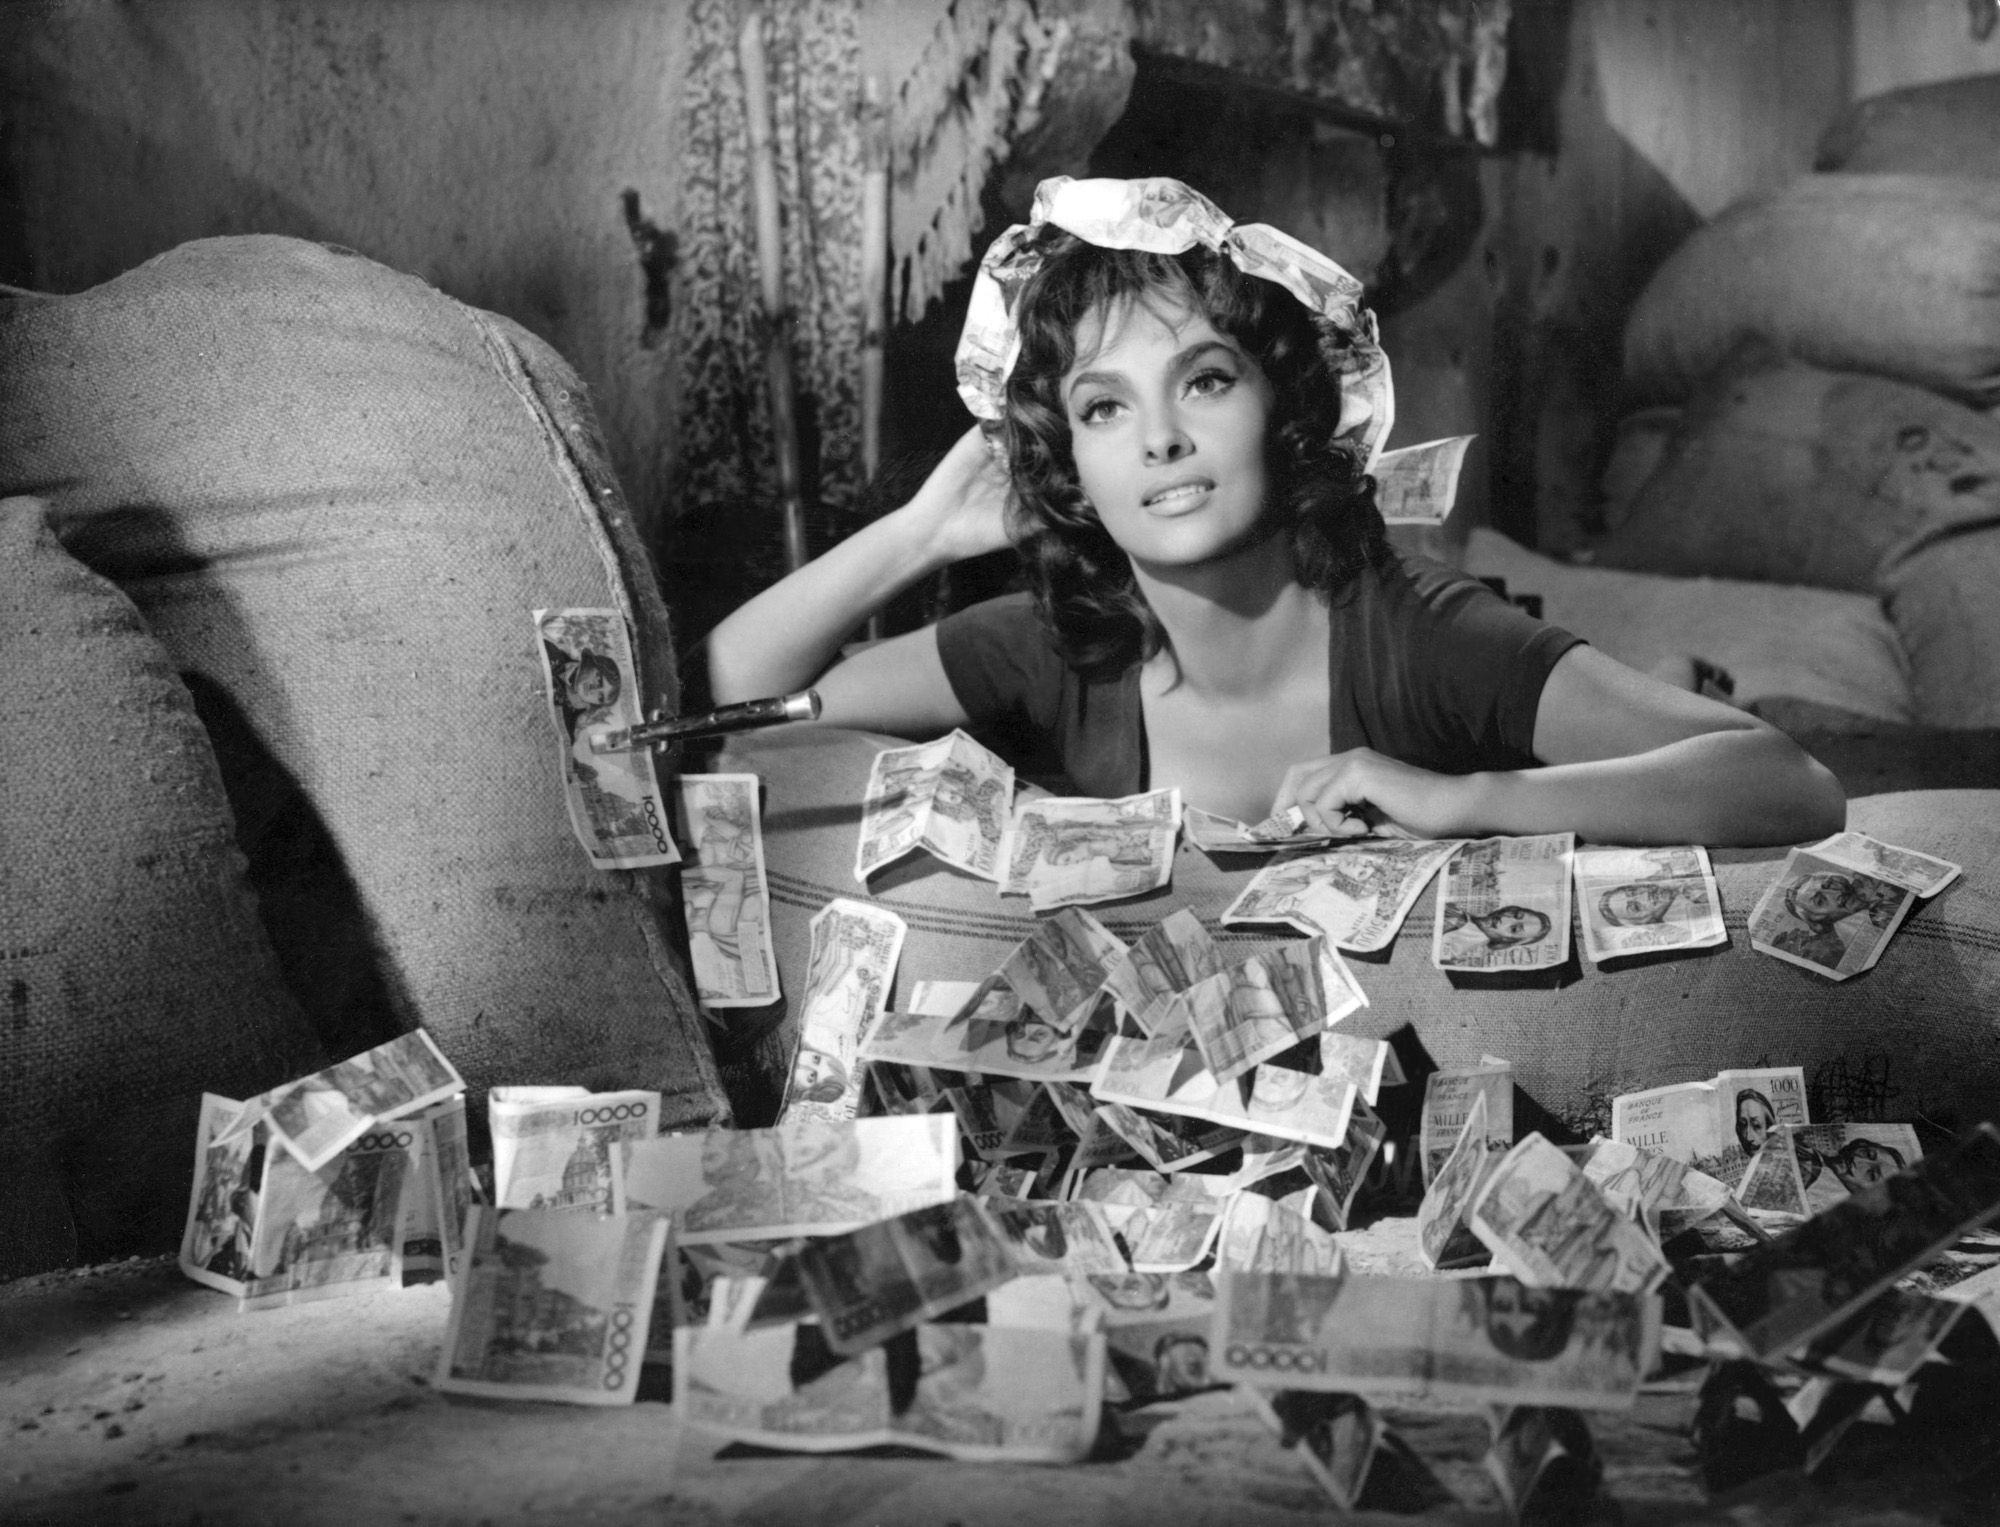 ina Lollobrigida in La Legge directed by Jules Dassin, 1959